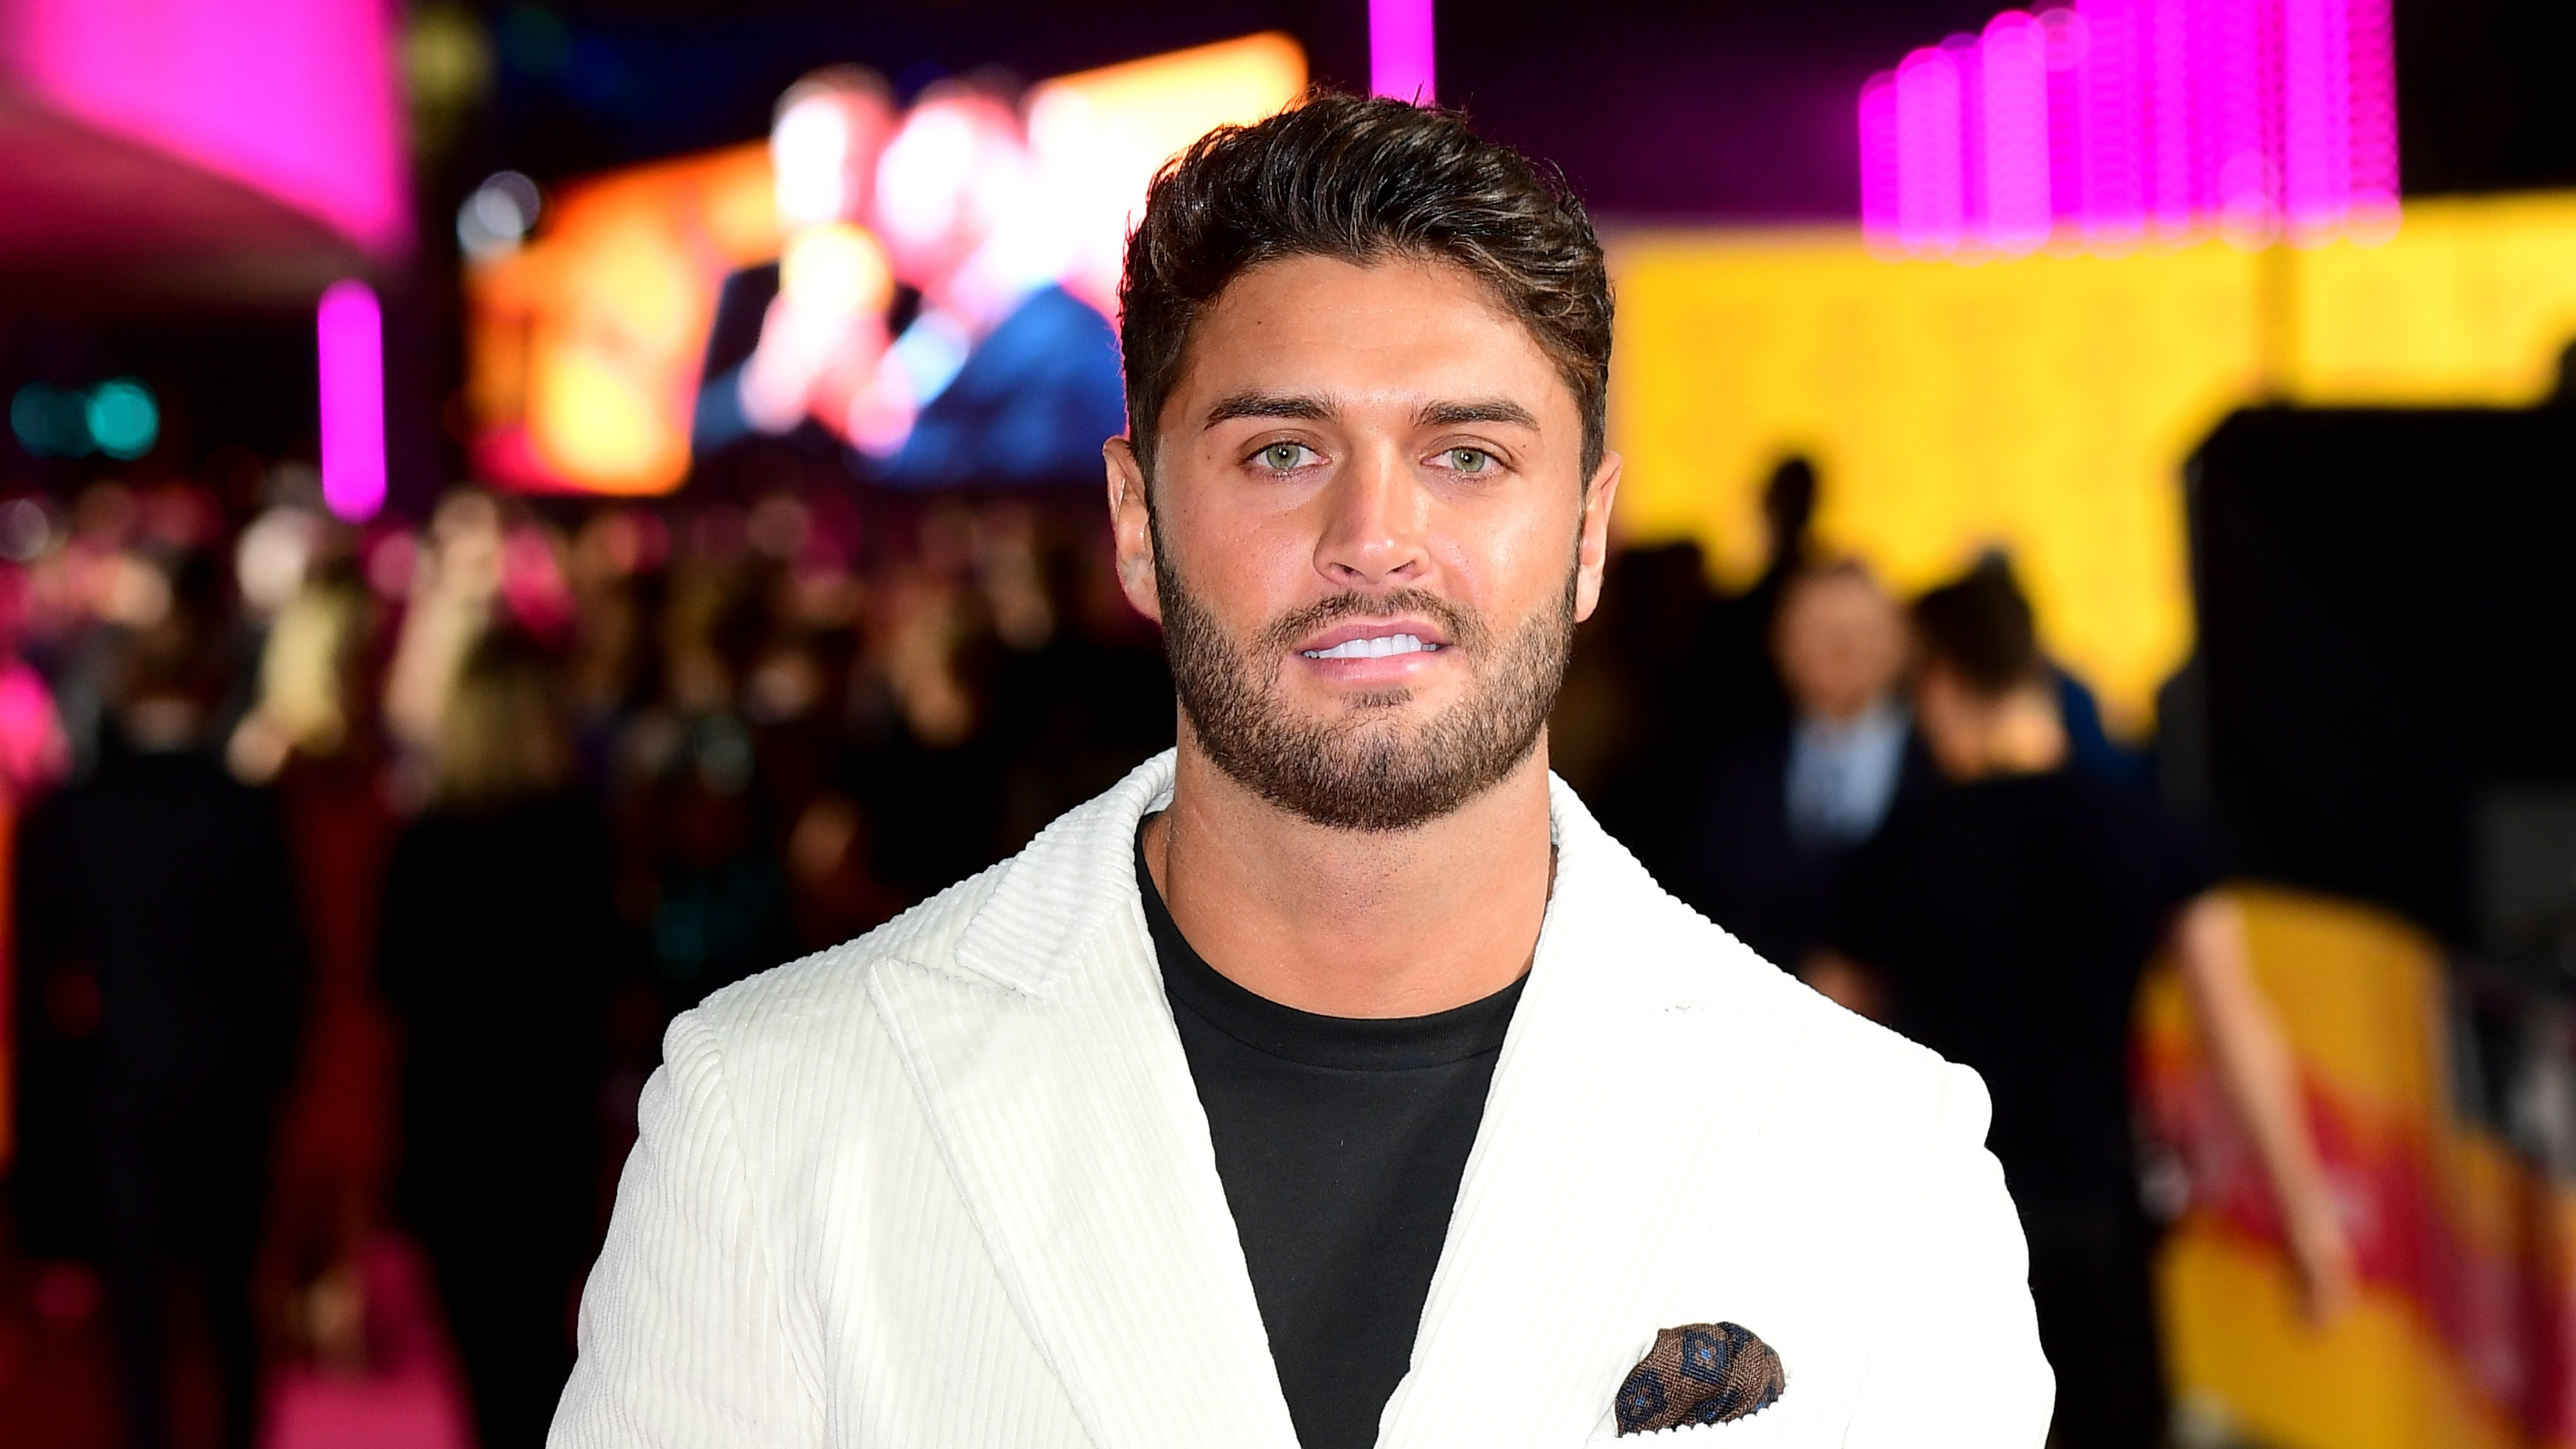 Tributes as Love Island's Mike Thalassitis dies aged 26